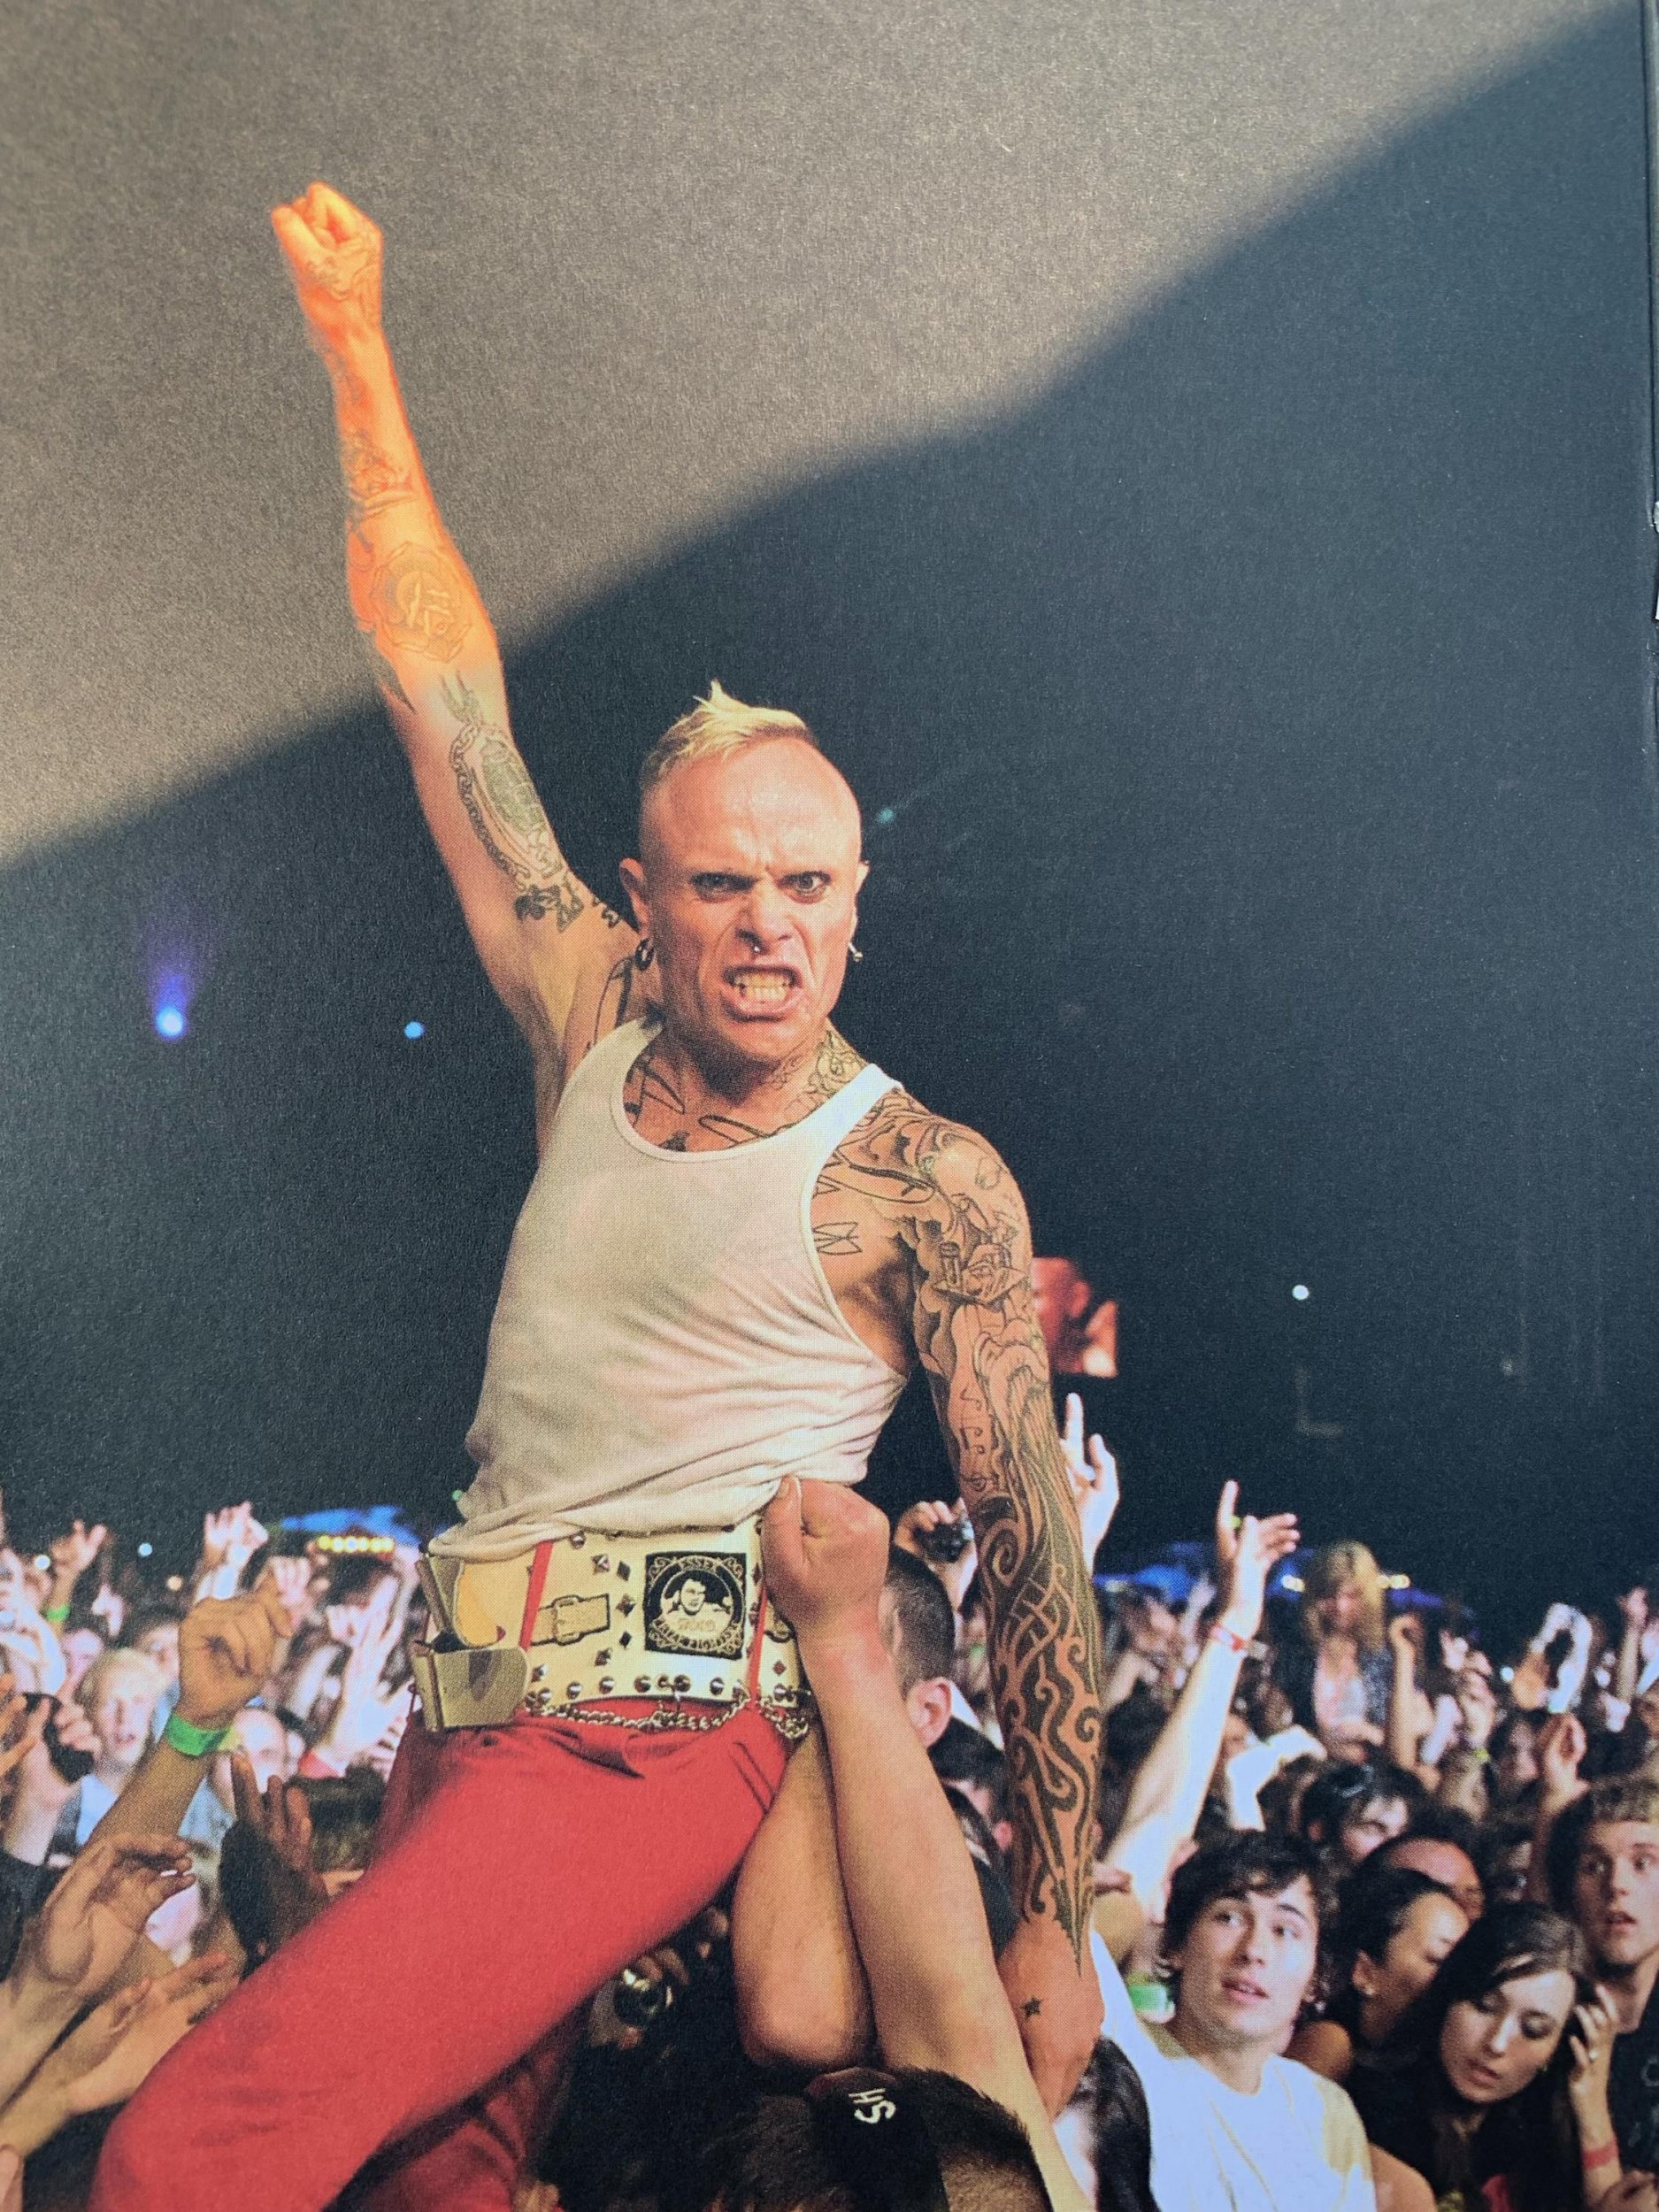 More tragedy for The Prodigy as minder Con dies weeks after tragic death of Keith Flint